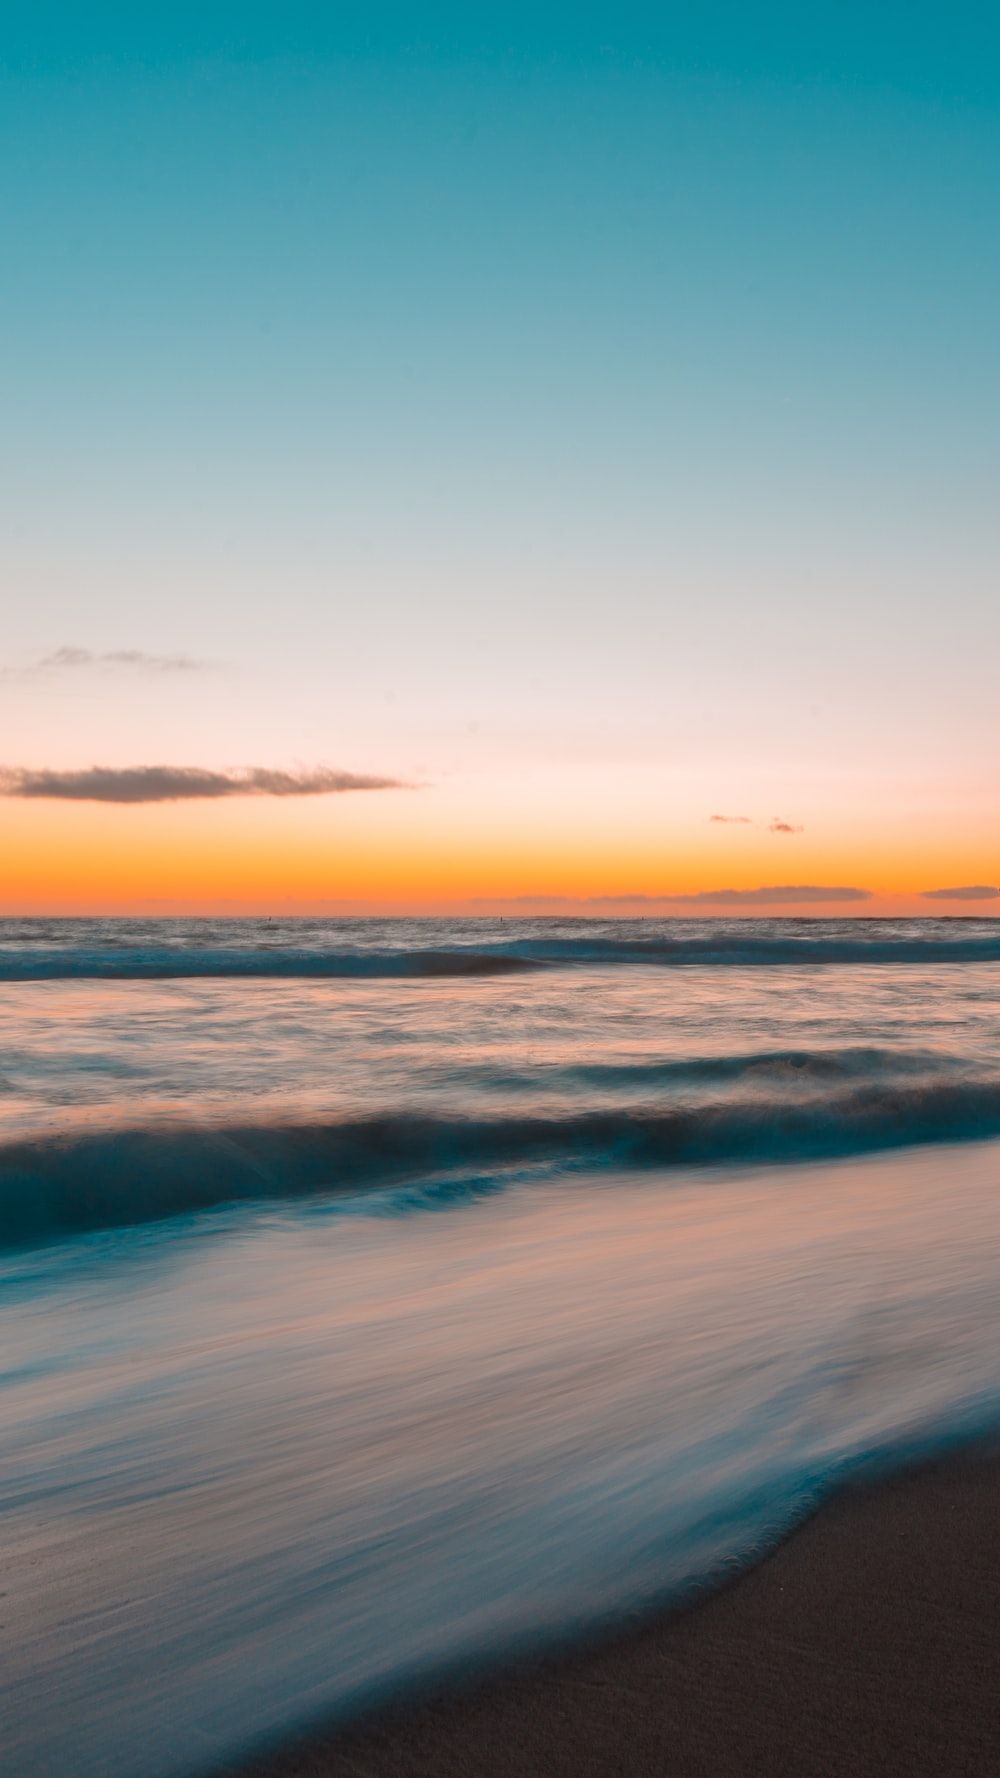 landscape photography of water waves